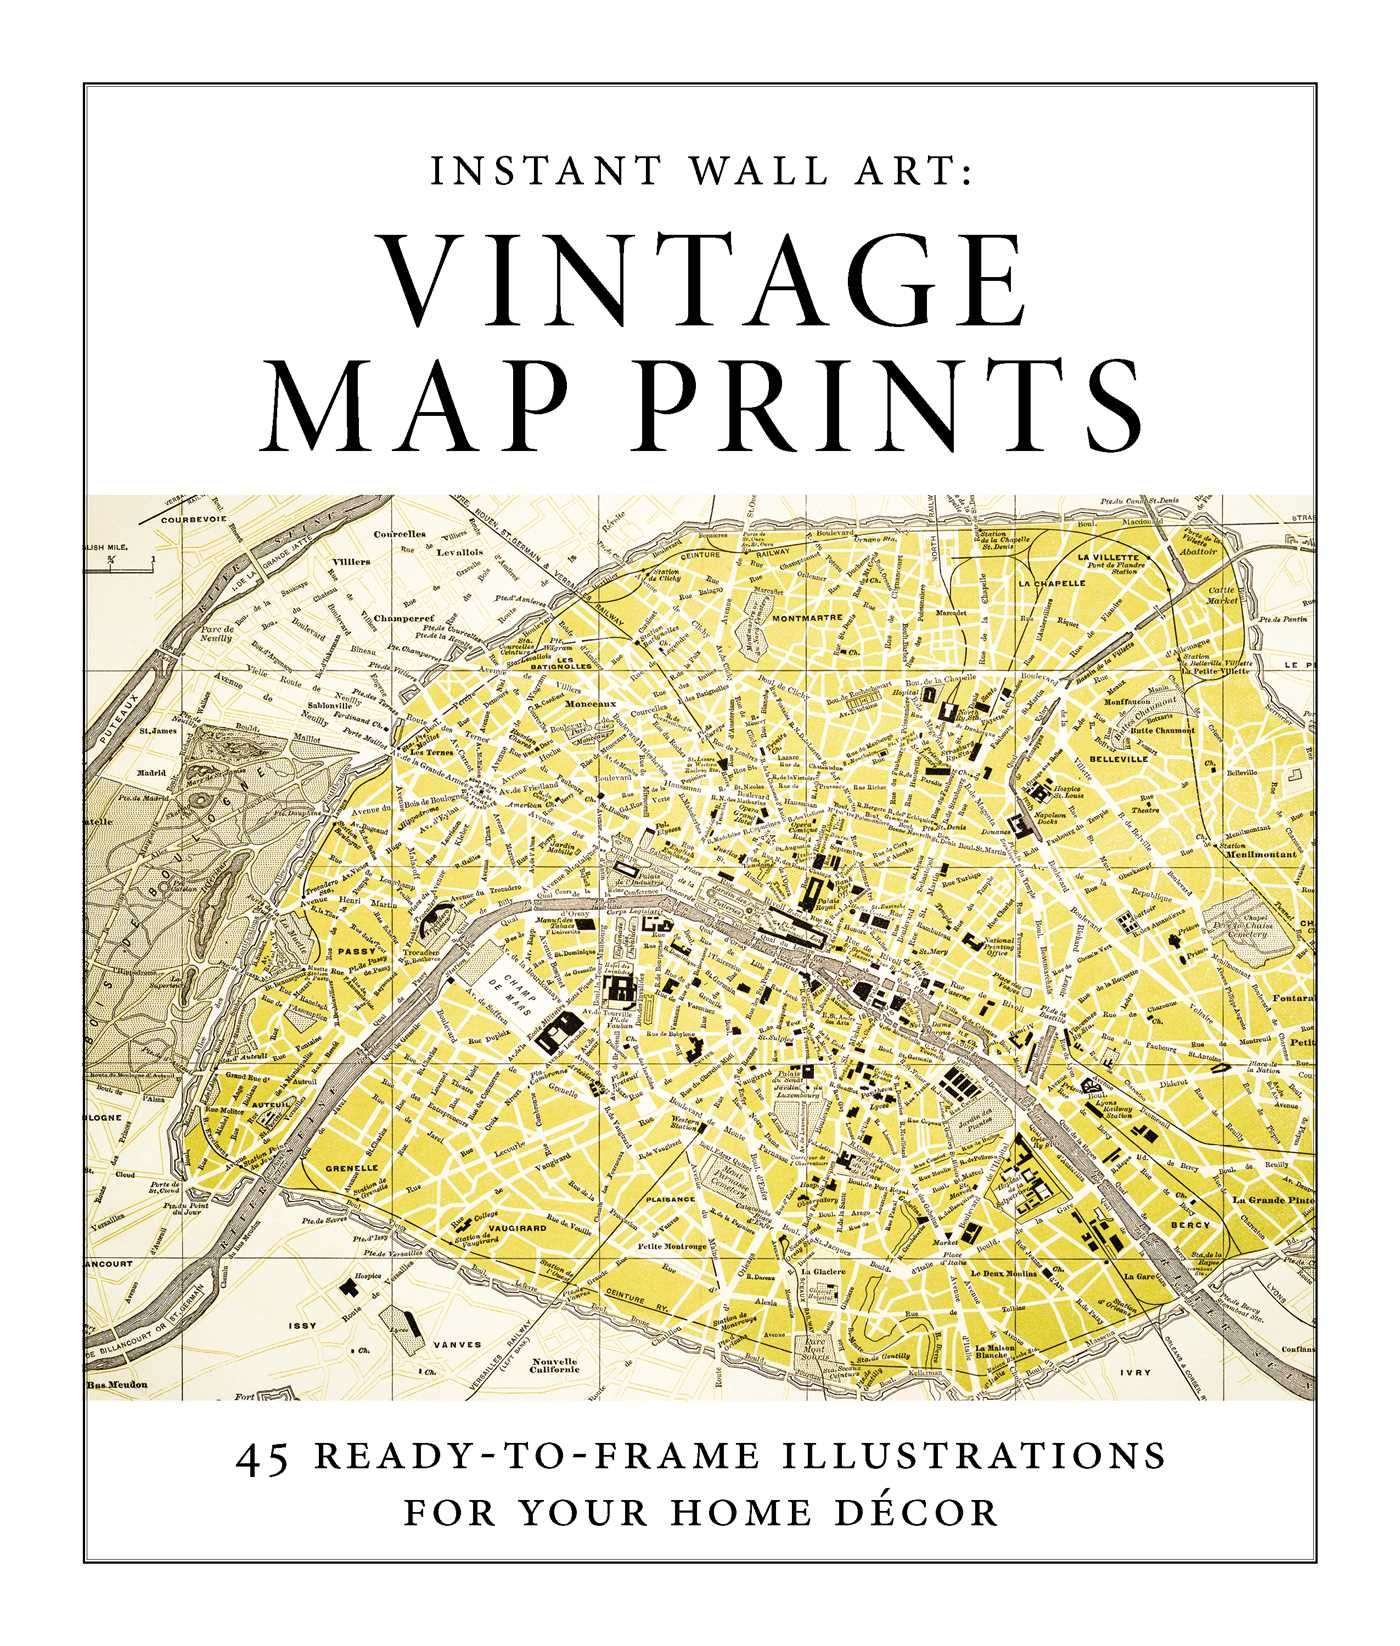 Instant Wall Art - Vintage Map Prints | Book by Adams Media ...